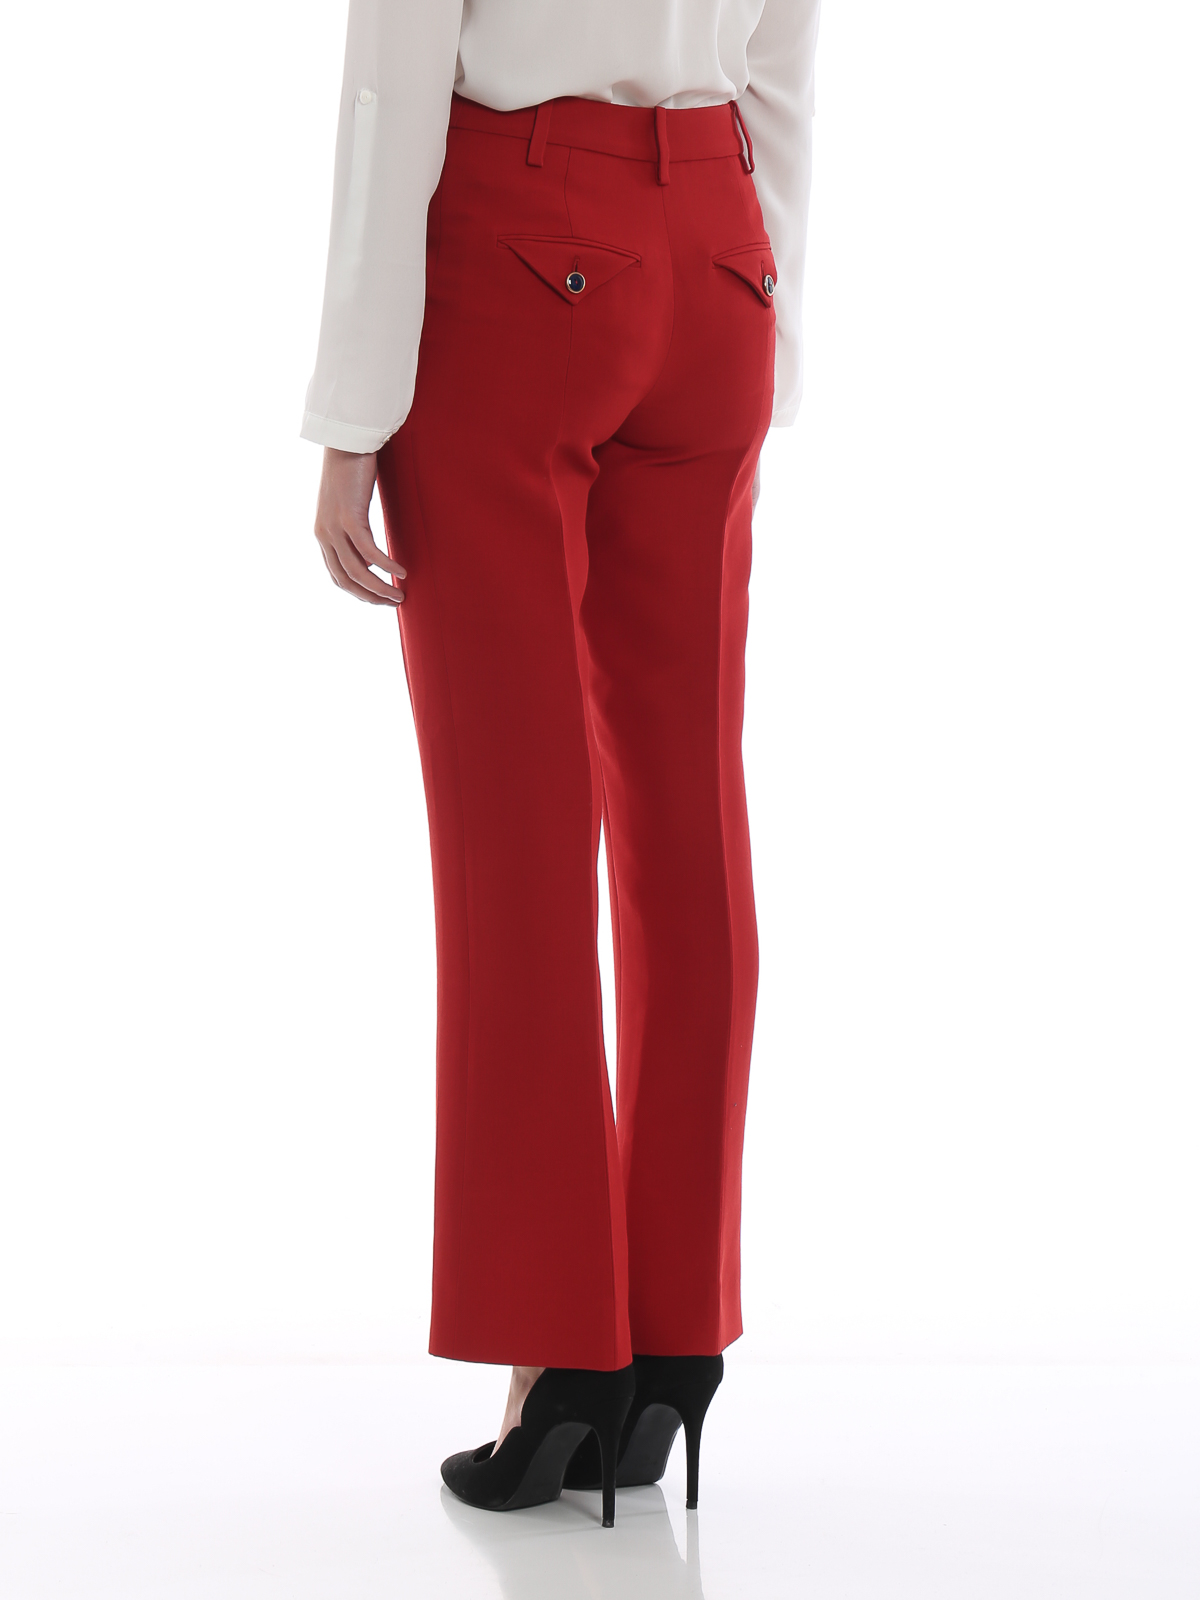 7c4328d4bded Valentino - Wool and silk high rise trousers - Tailored & Formal ...